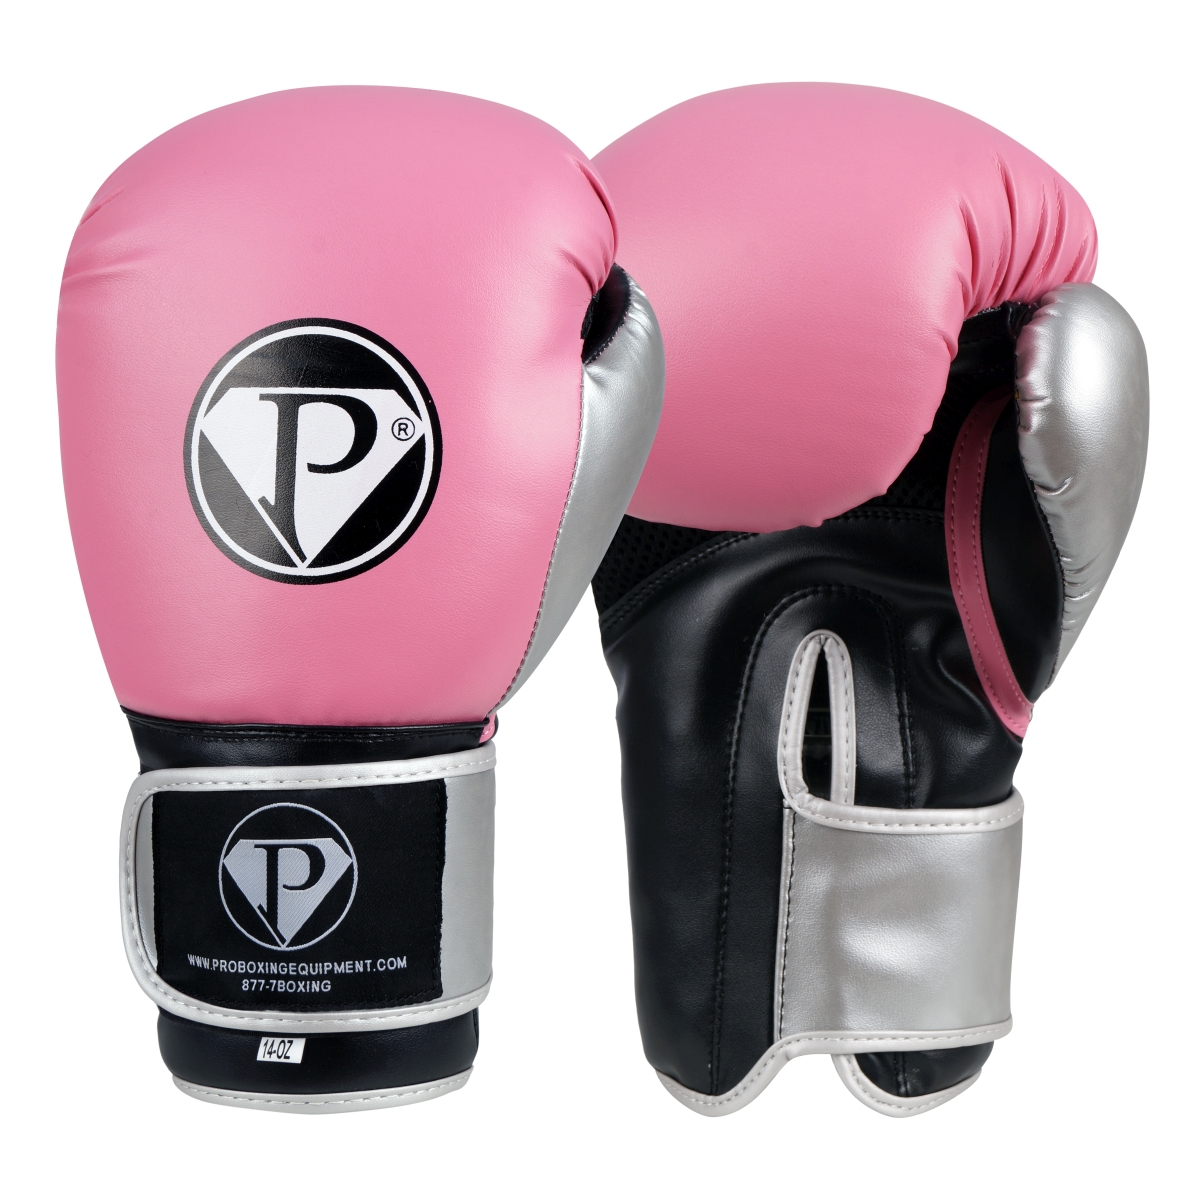 PRO Boxing Gloves Pink Black Silver